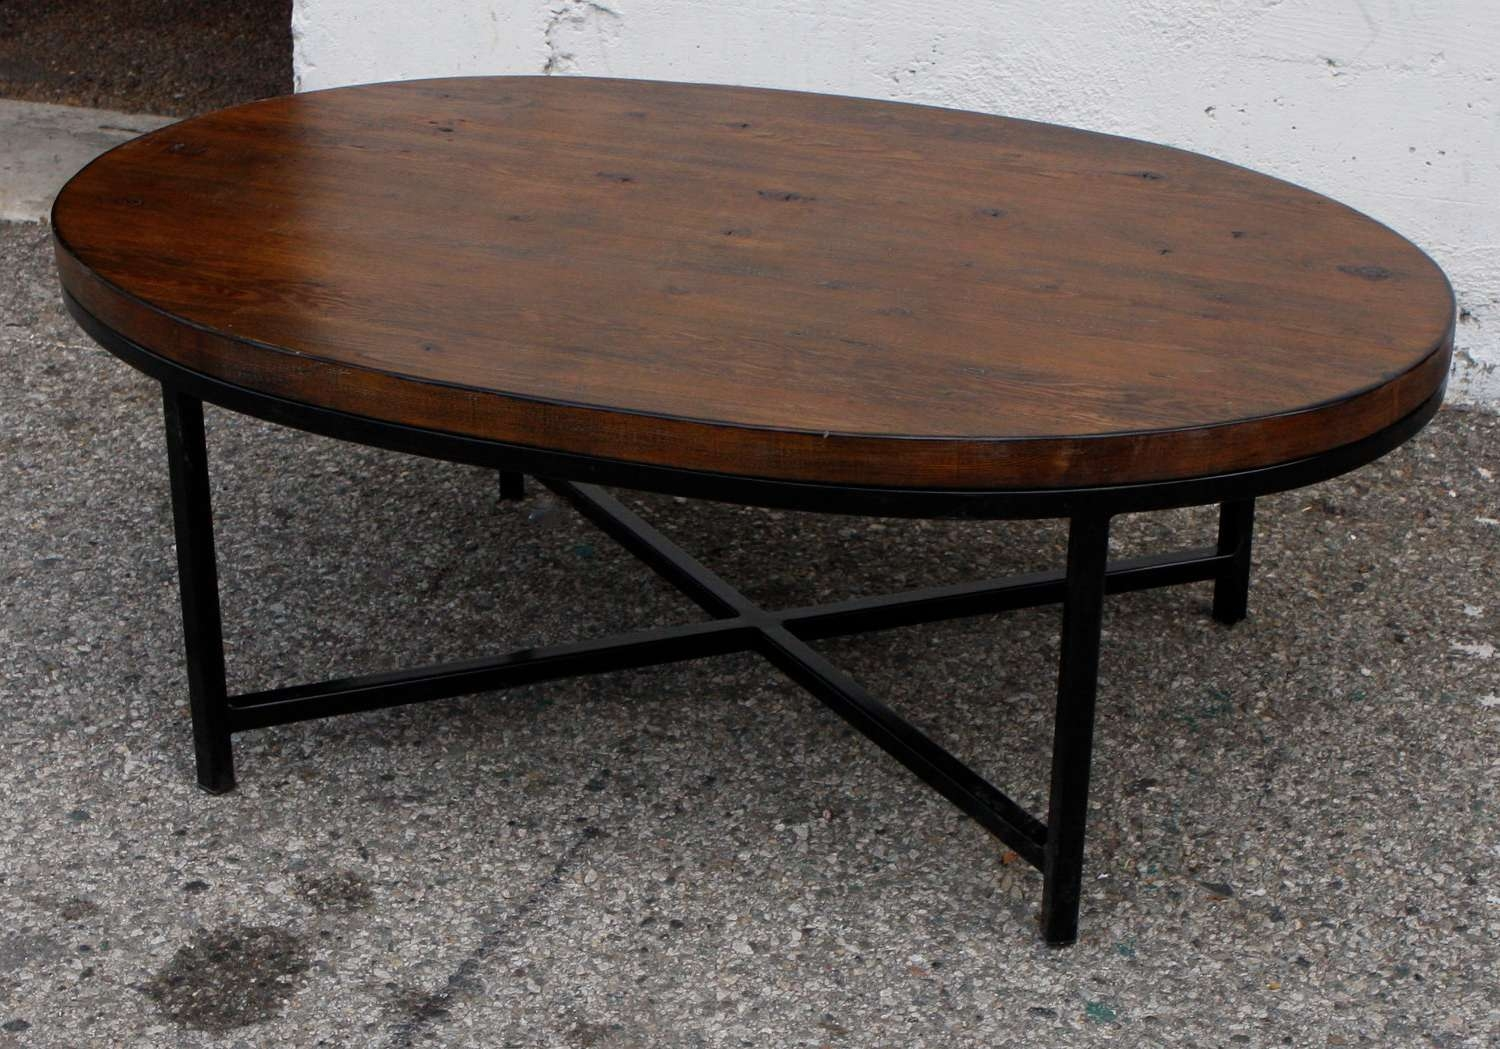 Coffee Tables : Oval Wood Coffee Table With Metal Legs Square Pertaining To Fashionable Oval Glass And Wood Coffee Tables (View 16 of 20)